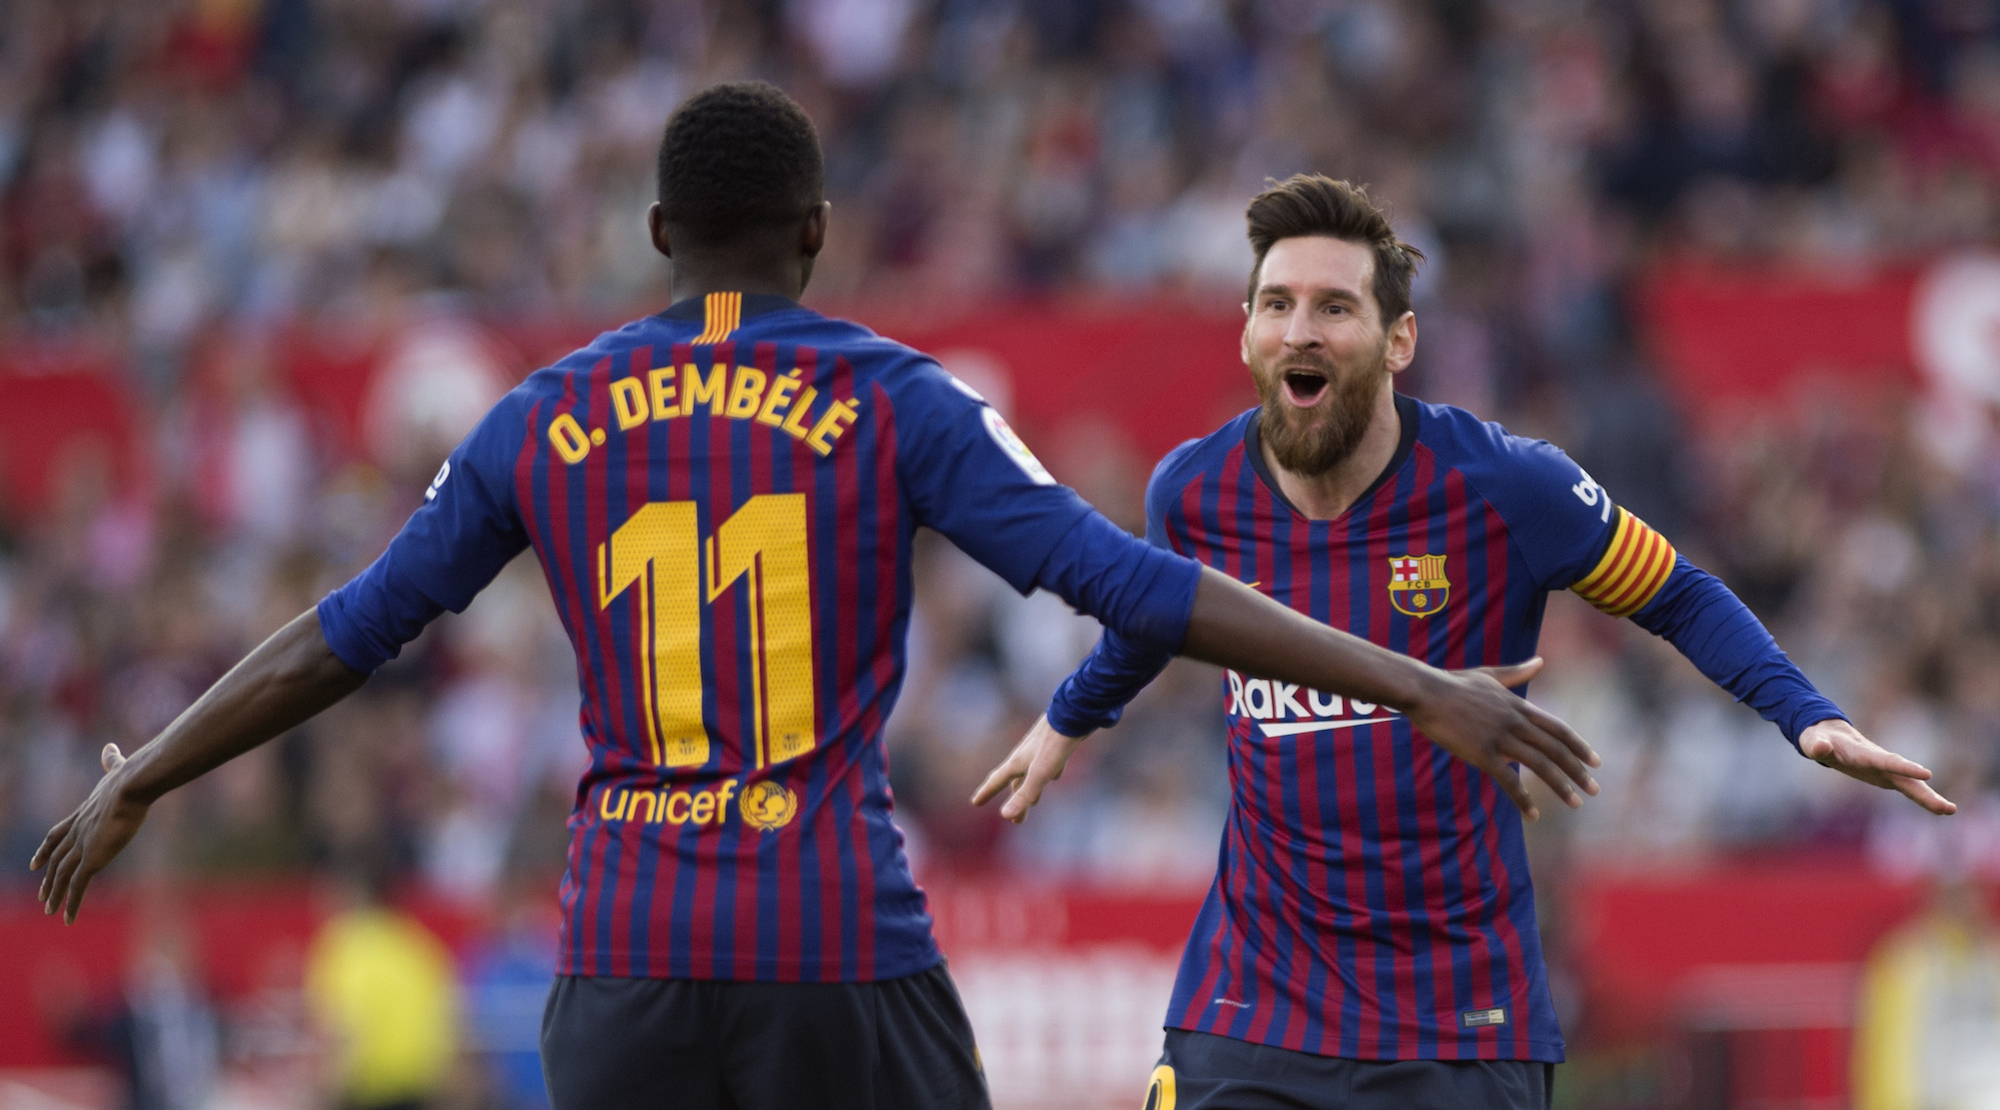 Barcelona's Argentinian forward Lionel Messi (R) celebrates with Barcelona's French forward Ousmane Dembele after scoring a goal during the Spanish league football match between Sevilla FC and FC Barcelona at the Ramon Sanchez Pizjuan stadium in Sevilla on February 23, 2019. (Photo by JORGE GUERRERO / AFP) (Photo credit should read JORGE GUERRERO/AFP/Getty Images)